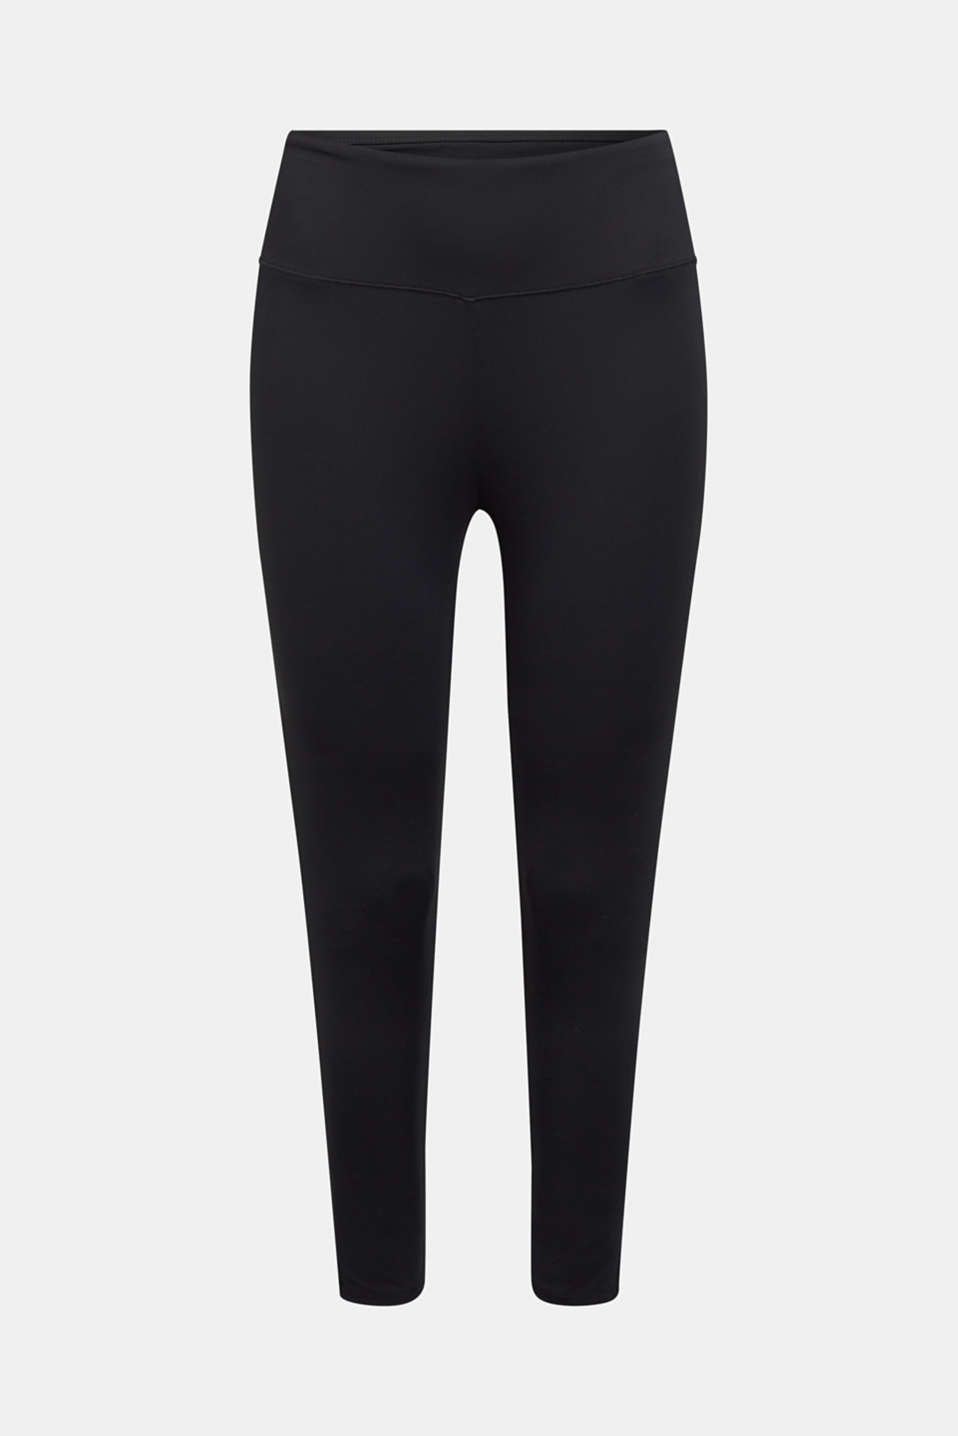 These leggings with a wide logo waistband and E-DRY technology are your basic for various activities!